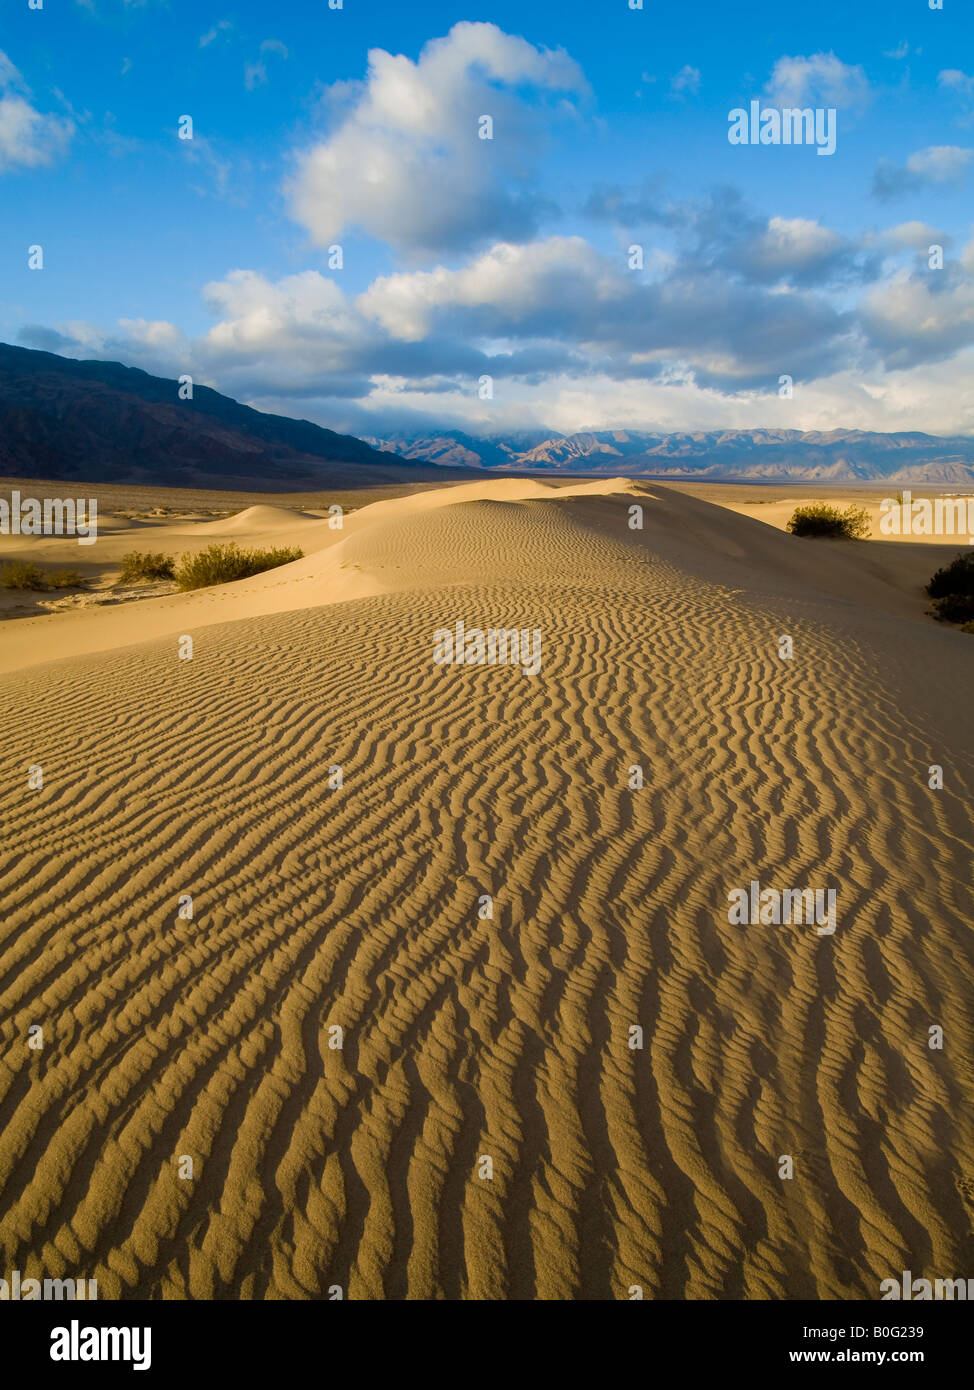 Stovepipe Wells Sand Dunes Death Valley National Park California USA - Stock Image